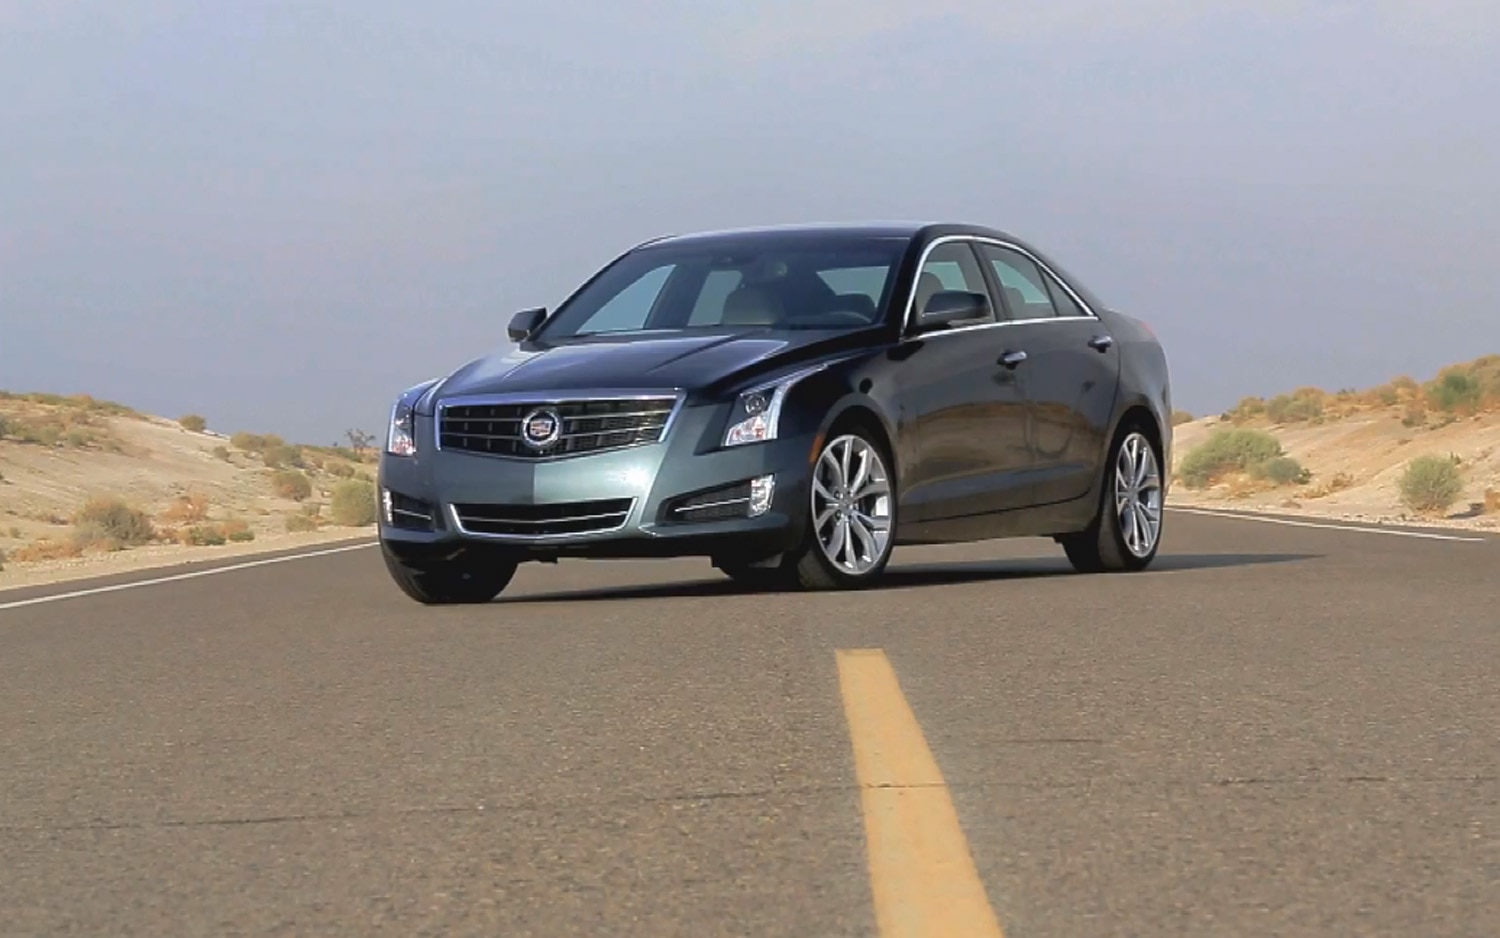 feature flick can the 2013 cadillac ats best the 2012 bmw 328i. Black Bedroom Furniture Sets. Home Design Ideas